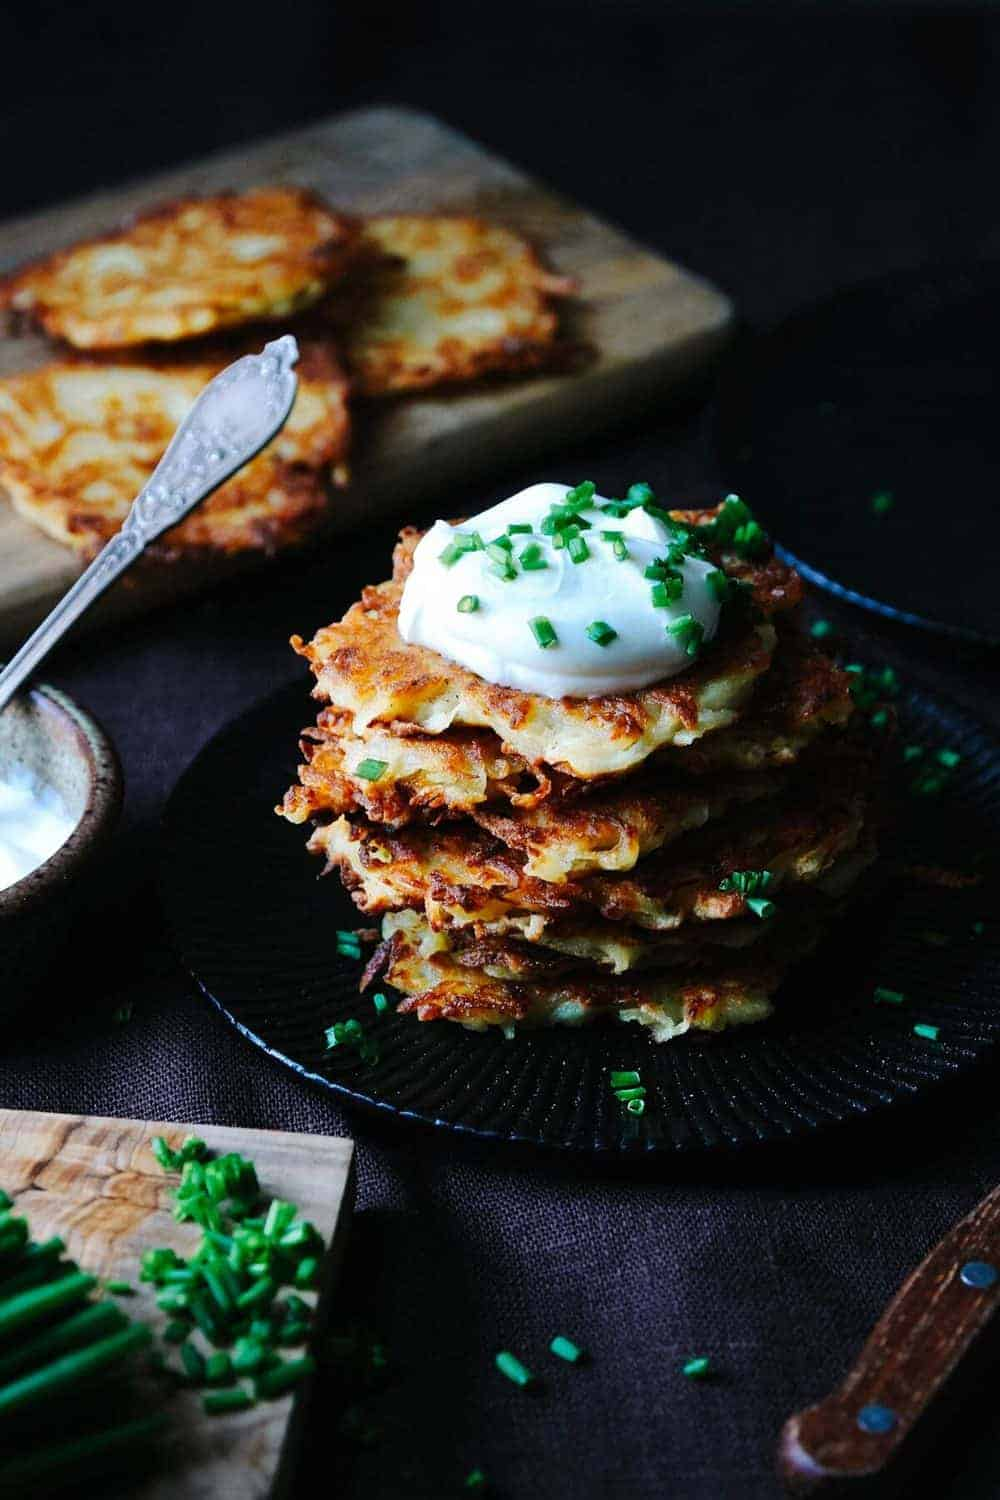 A stack of Kartoffelpuffer on a black plate, topped with sour cream and chives.